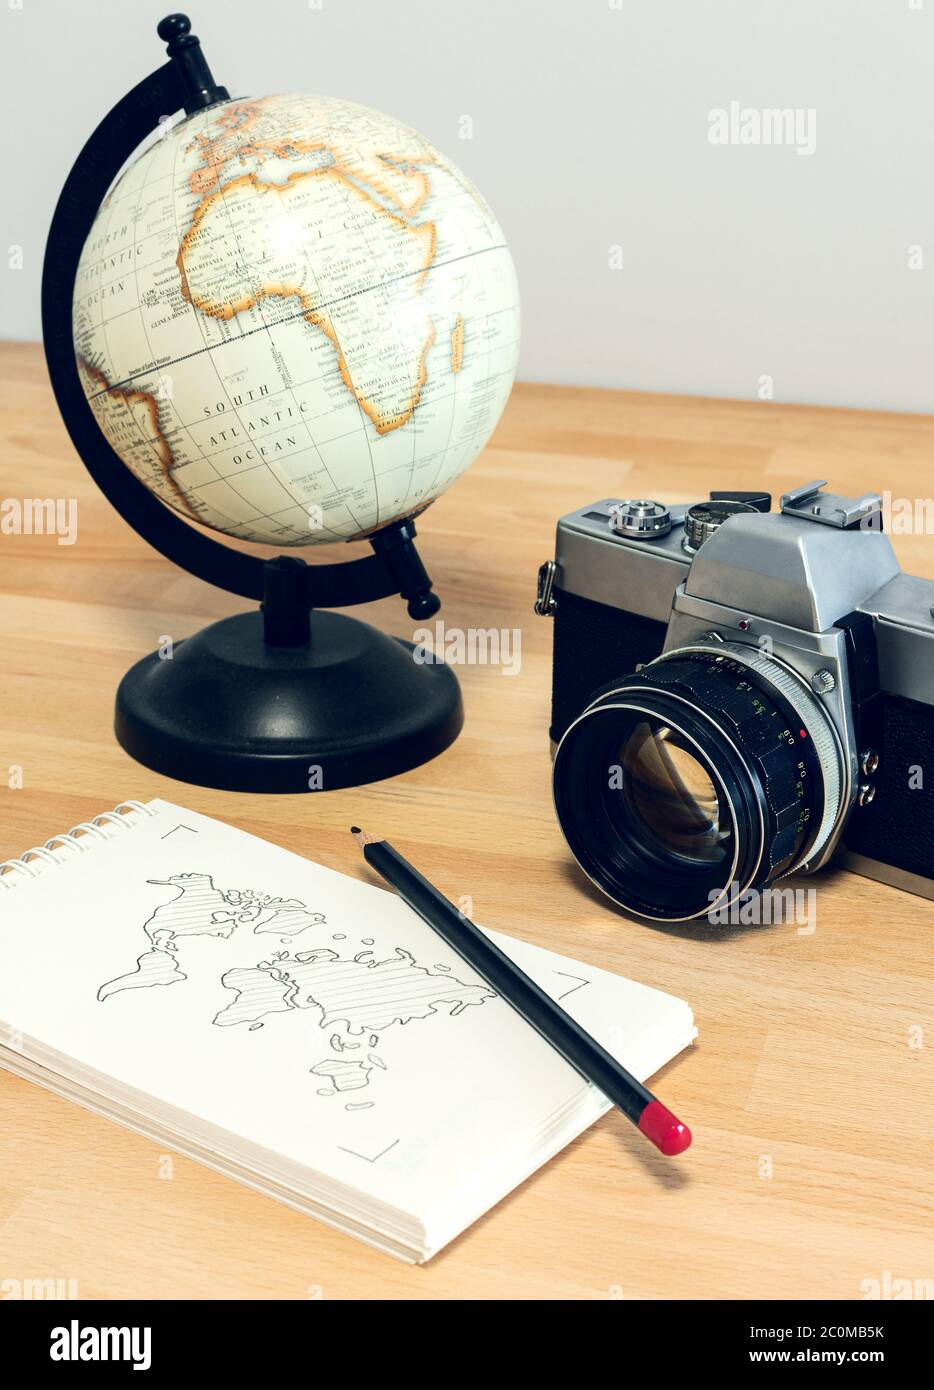 Camera, world globe and notebook with world map on a wooden desk. Travel concept image: planning a journey. Stock Photo